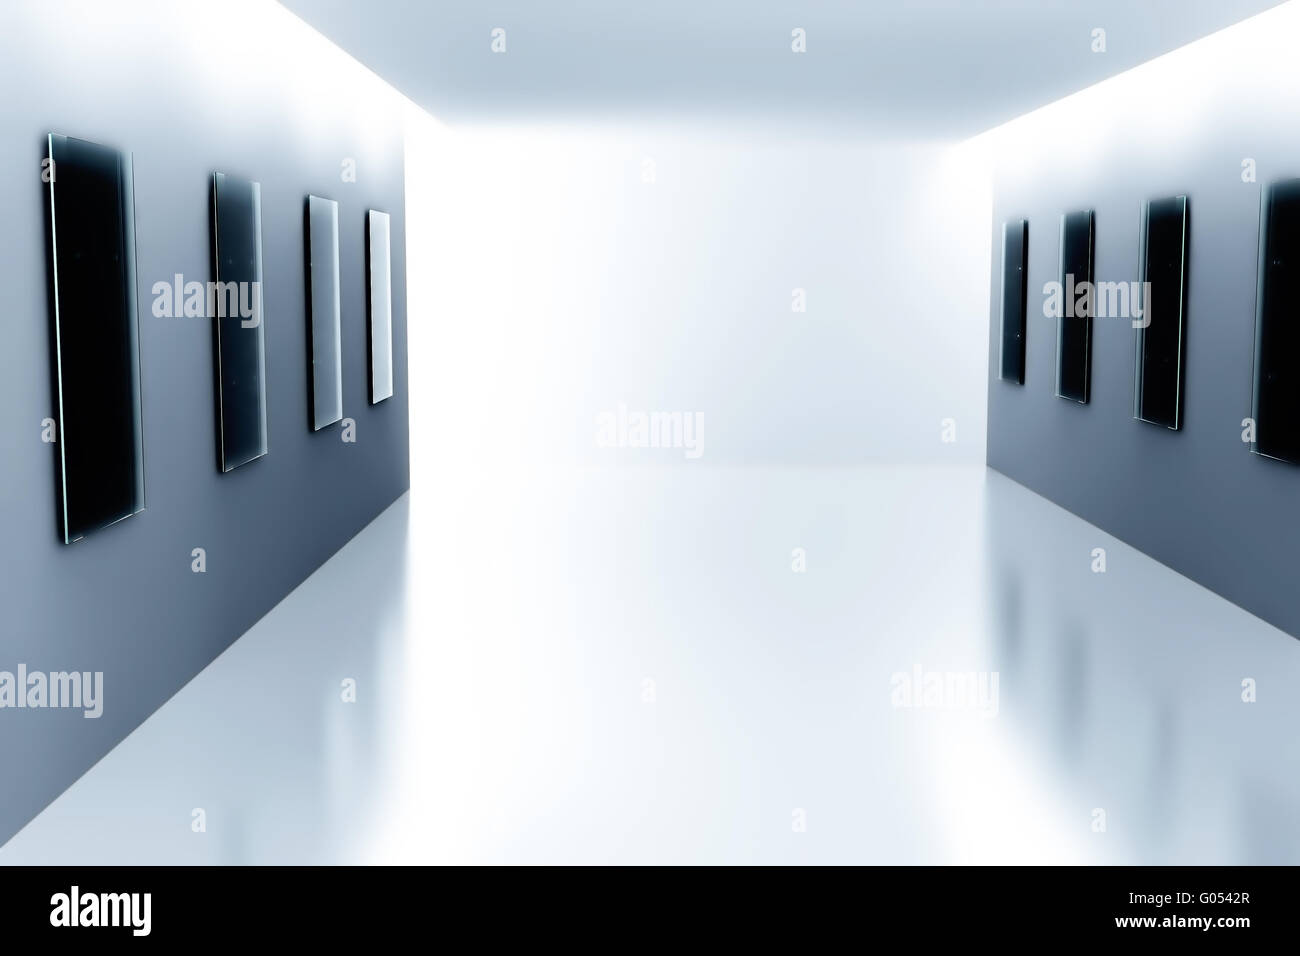 Empty Showroom With Glass Frames On The Walls Stock Photo 103375183